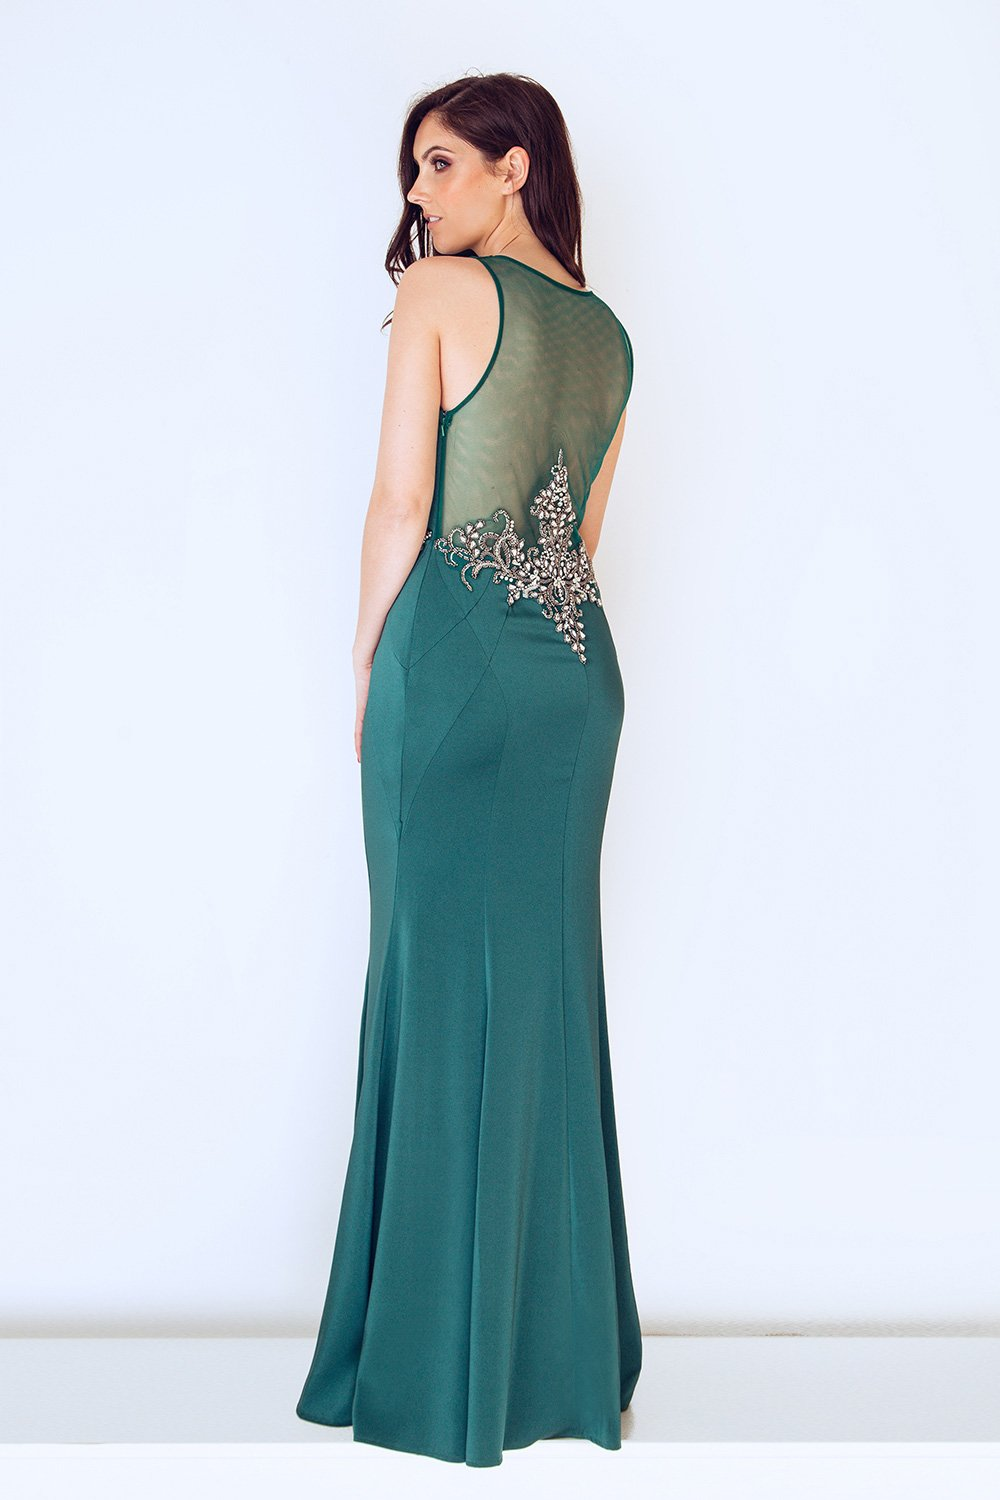 Emerald Green Long Satin Evening Gown - Gissings Boutique